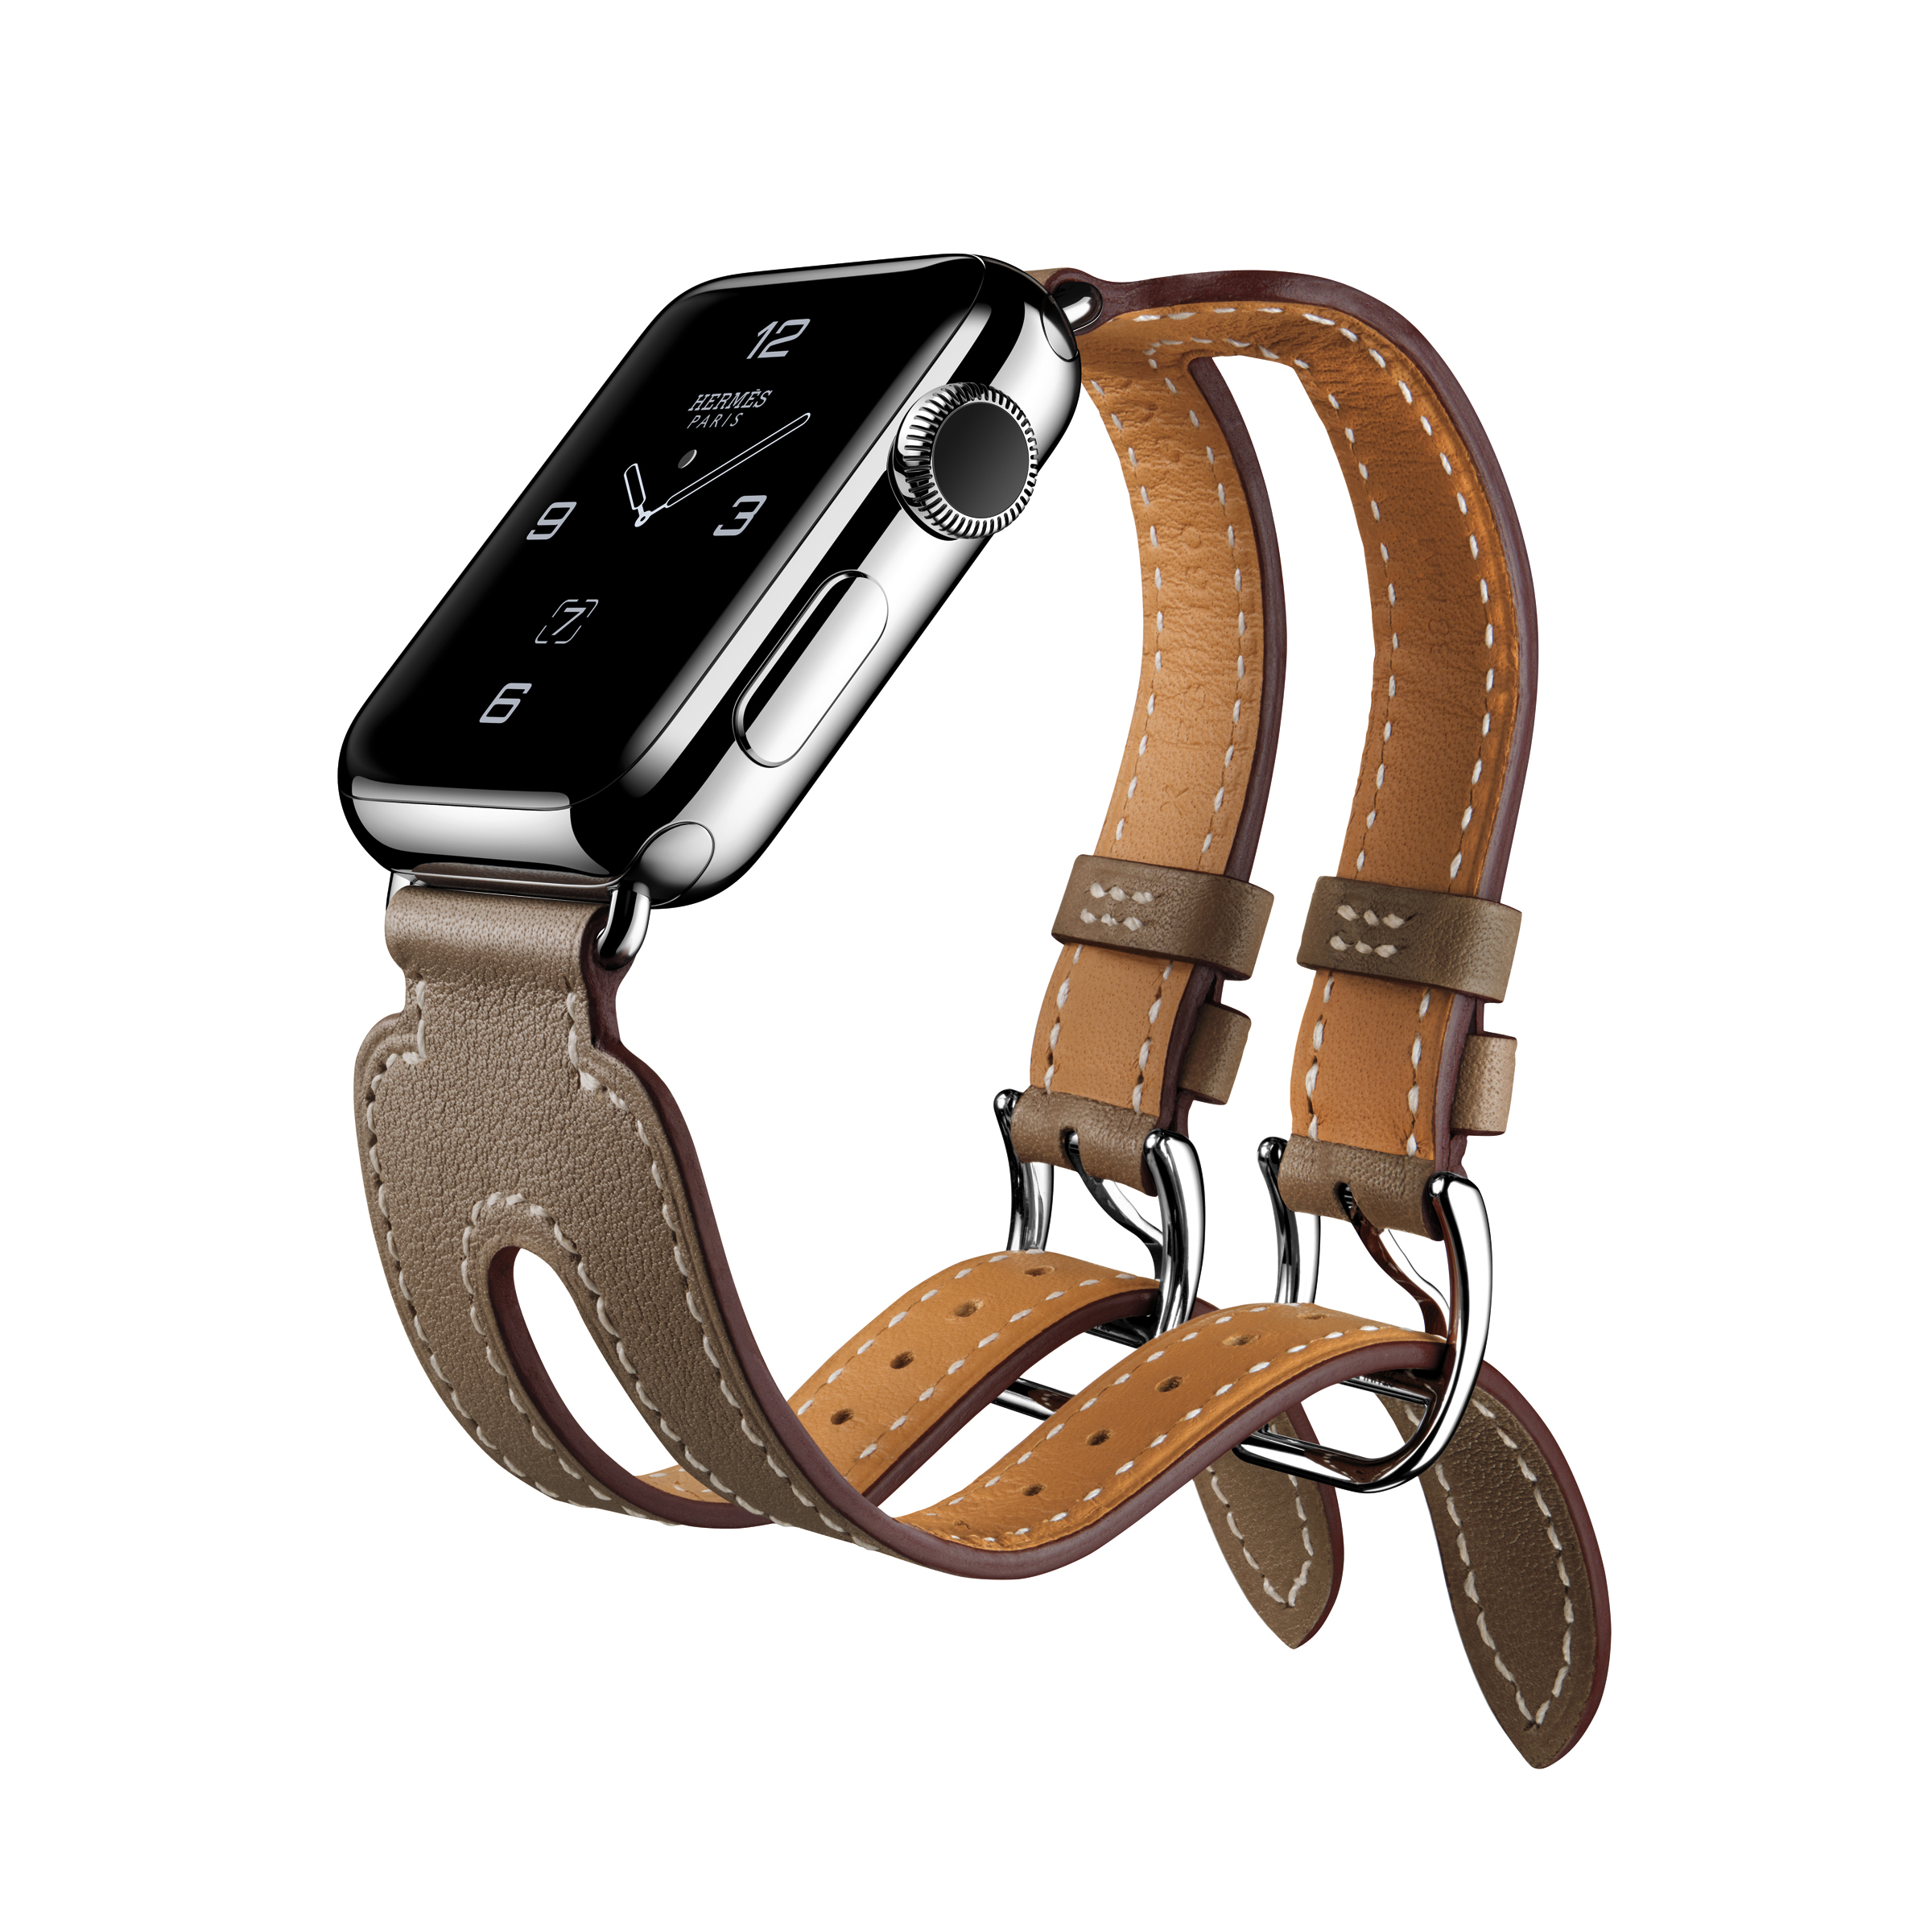 Your Old Apple Watch Bands Will Fit The Apple Watch Series 2